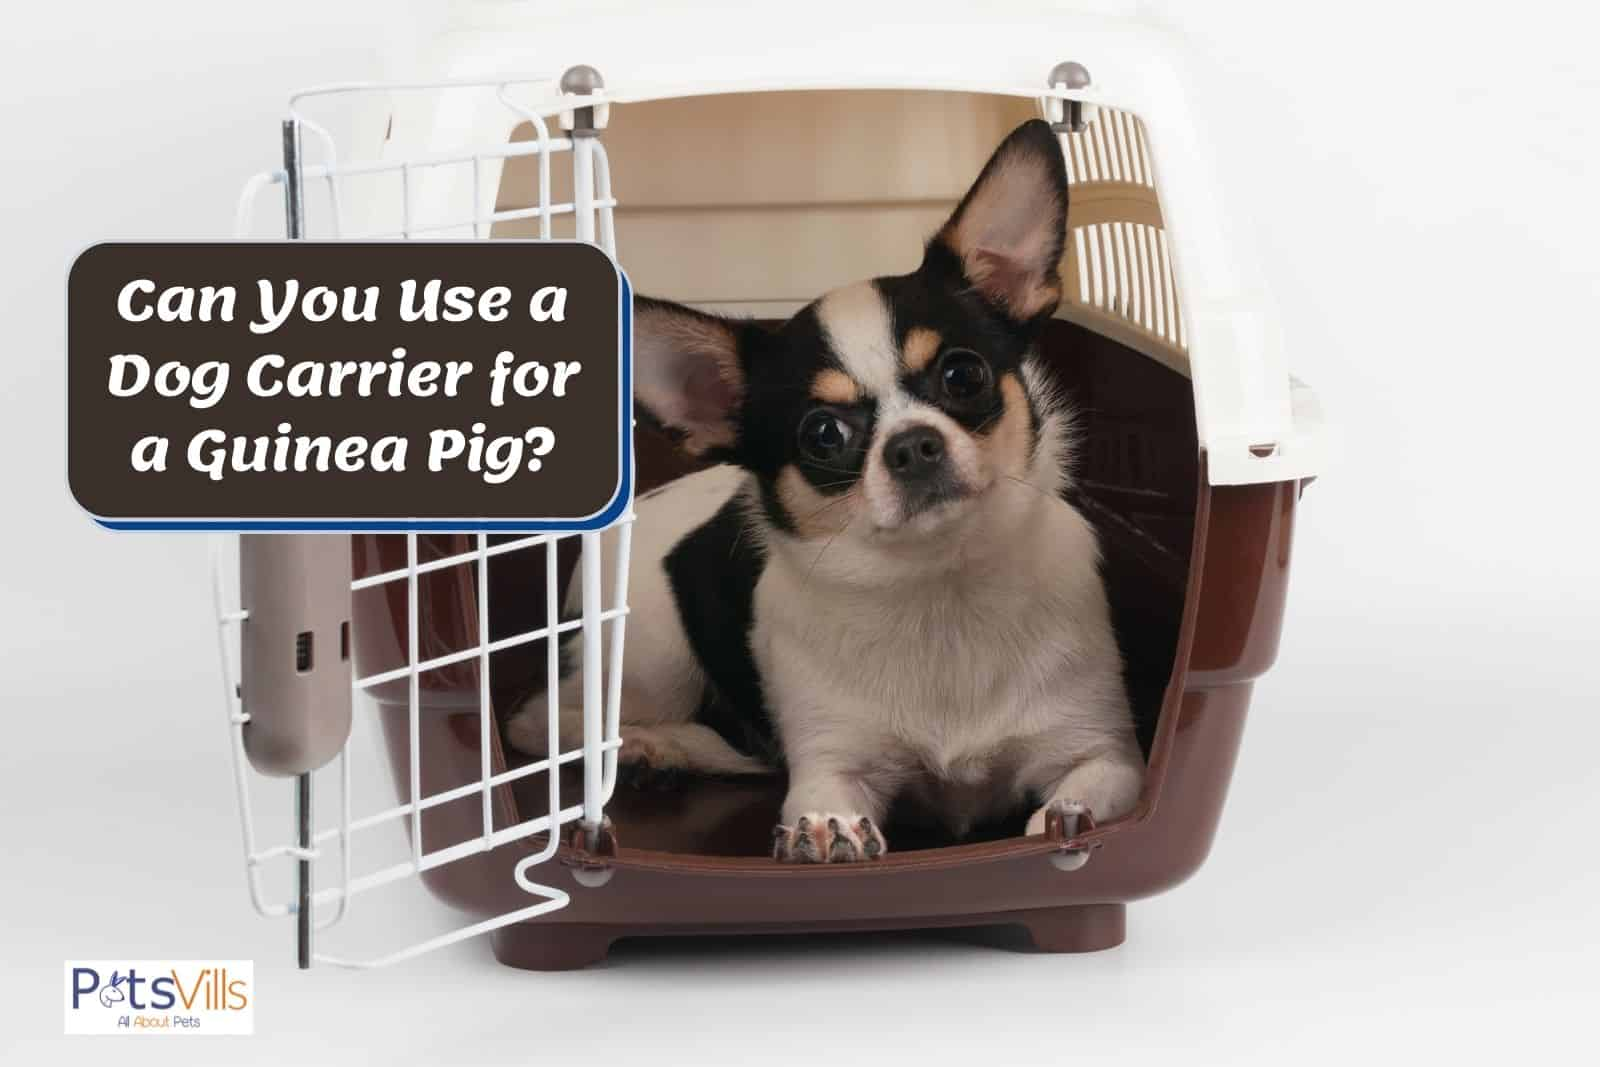 a cute dog inside his carrier but can you use a dog carrier for a guinea pig?